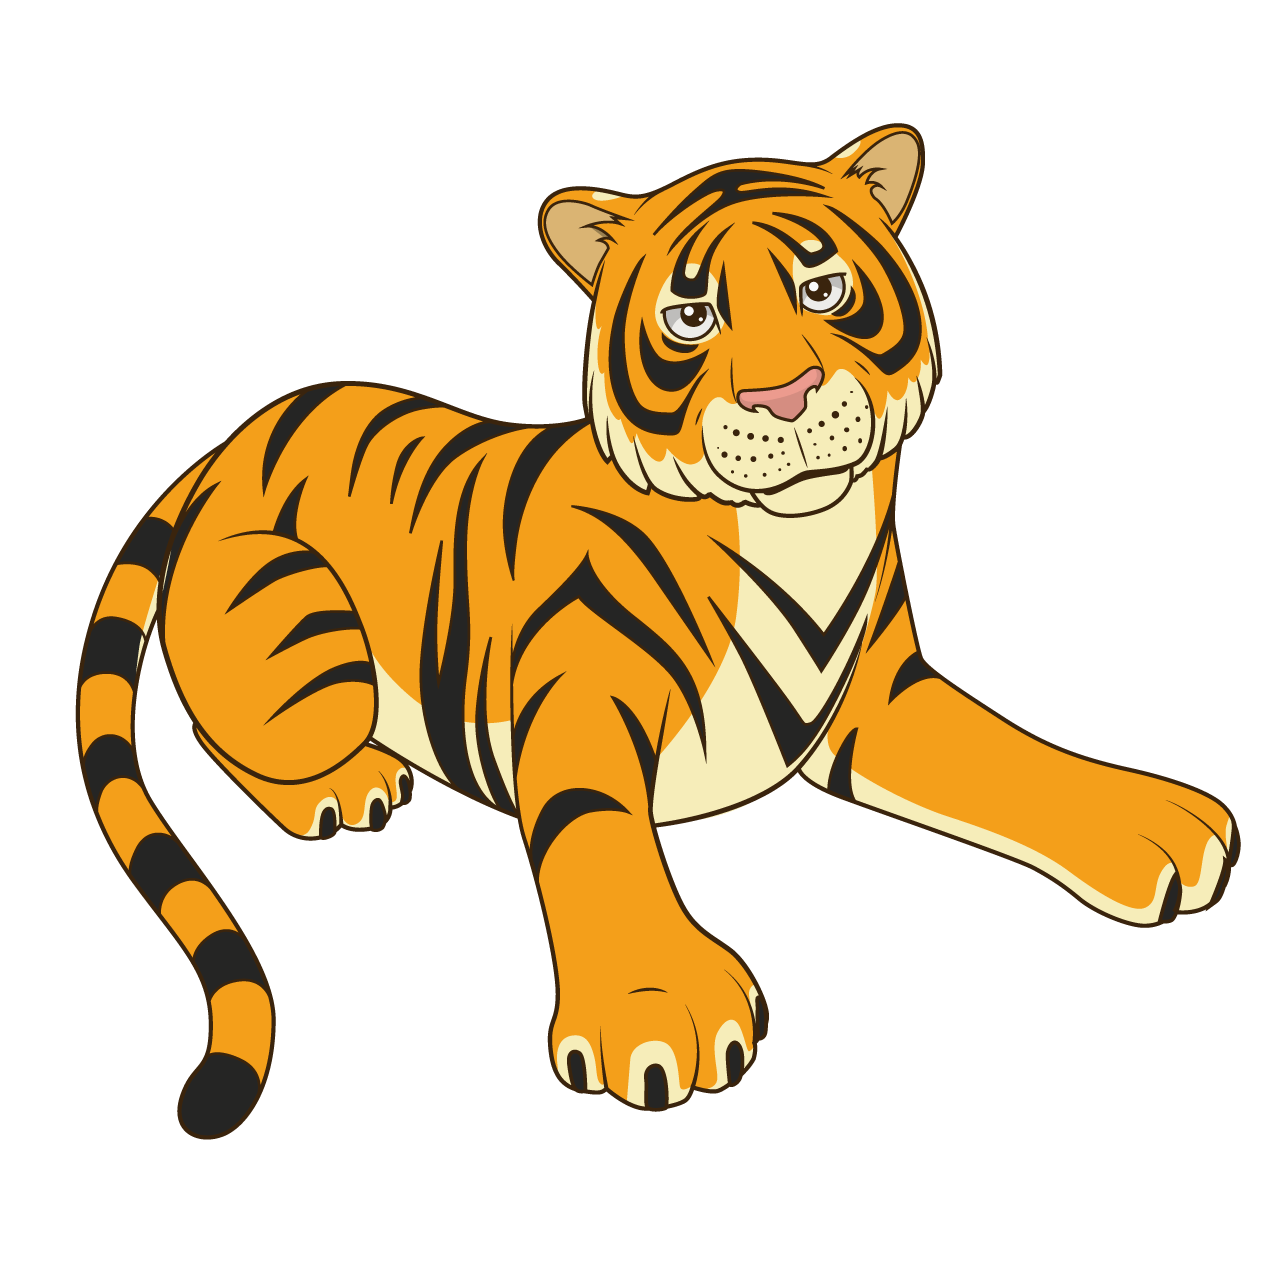 Tiger Black Cartoon Illustration Panther Free Clipart HQ PNG Image